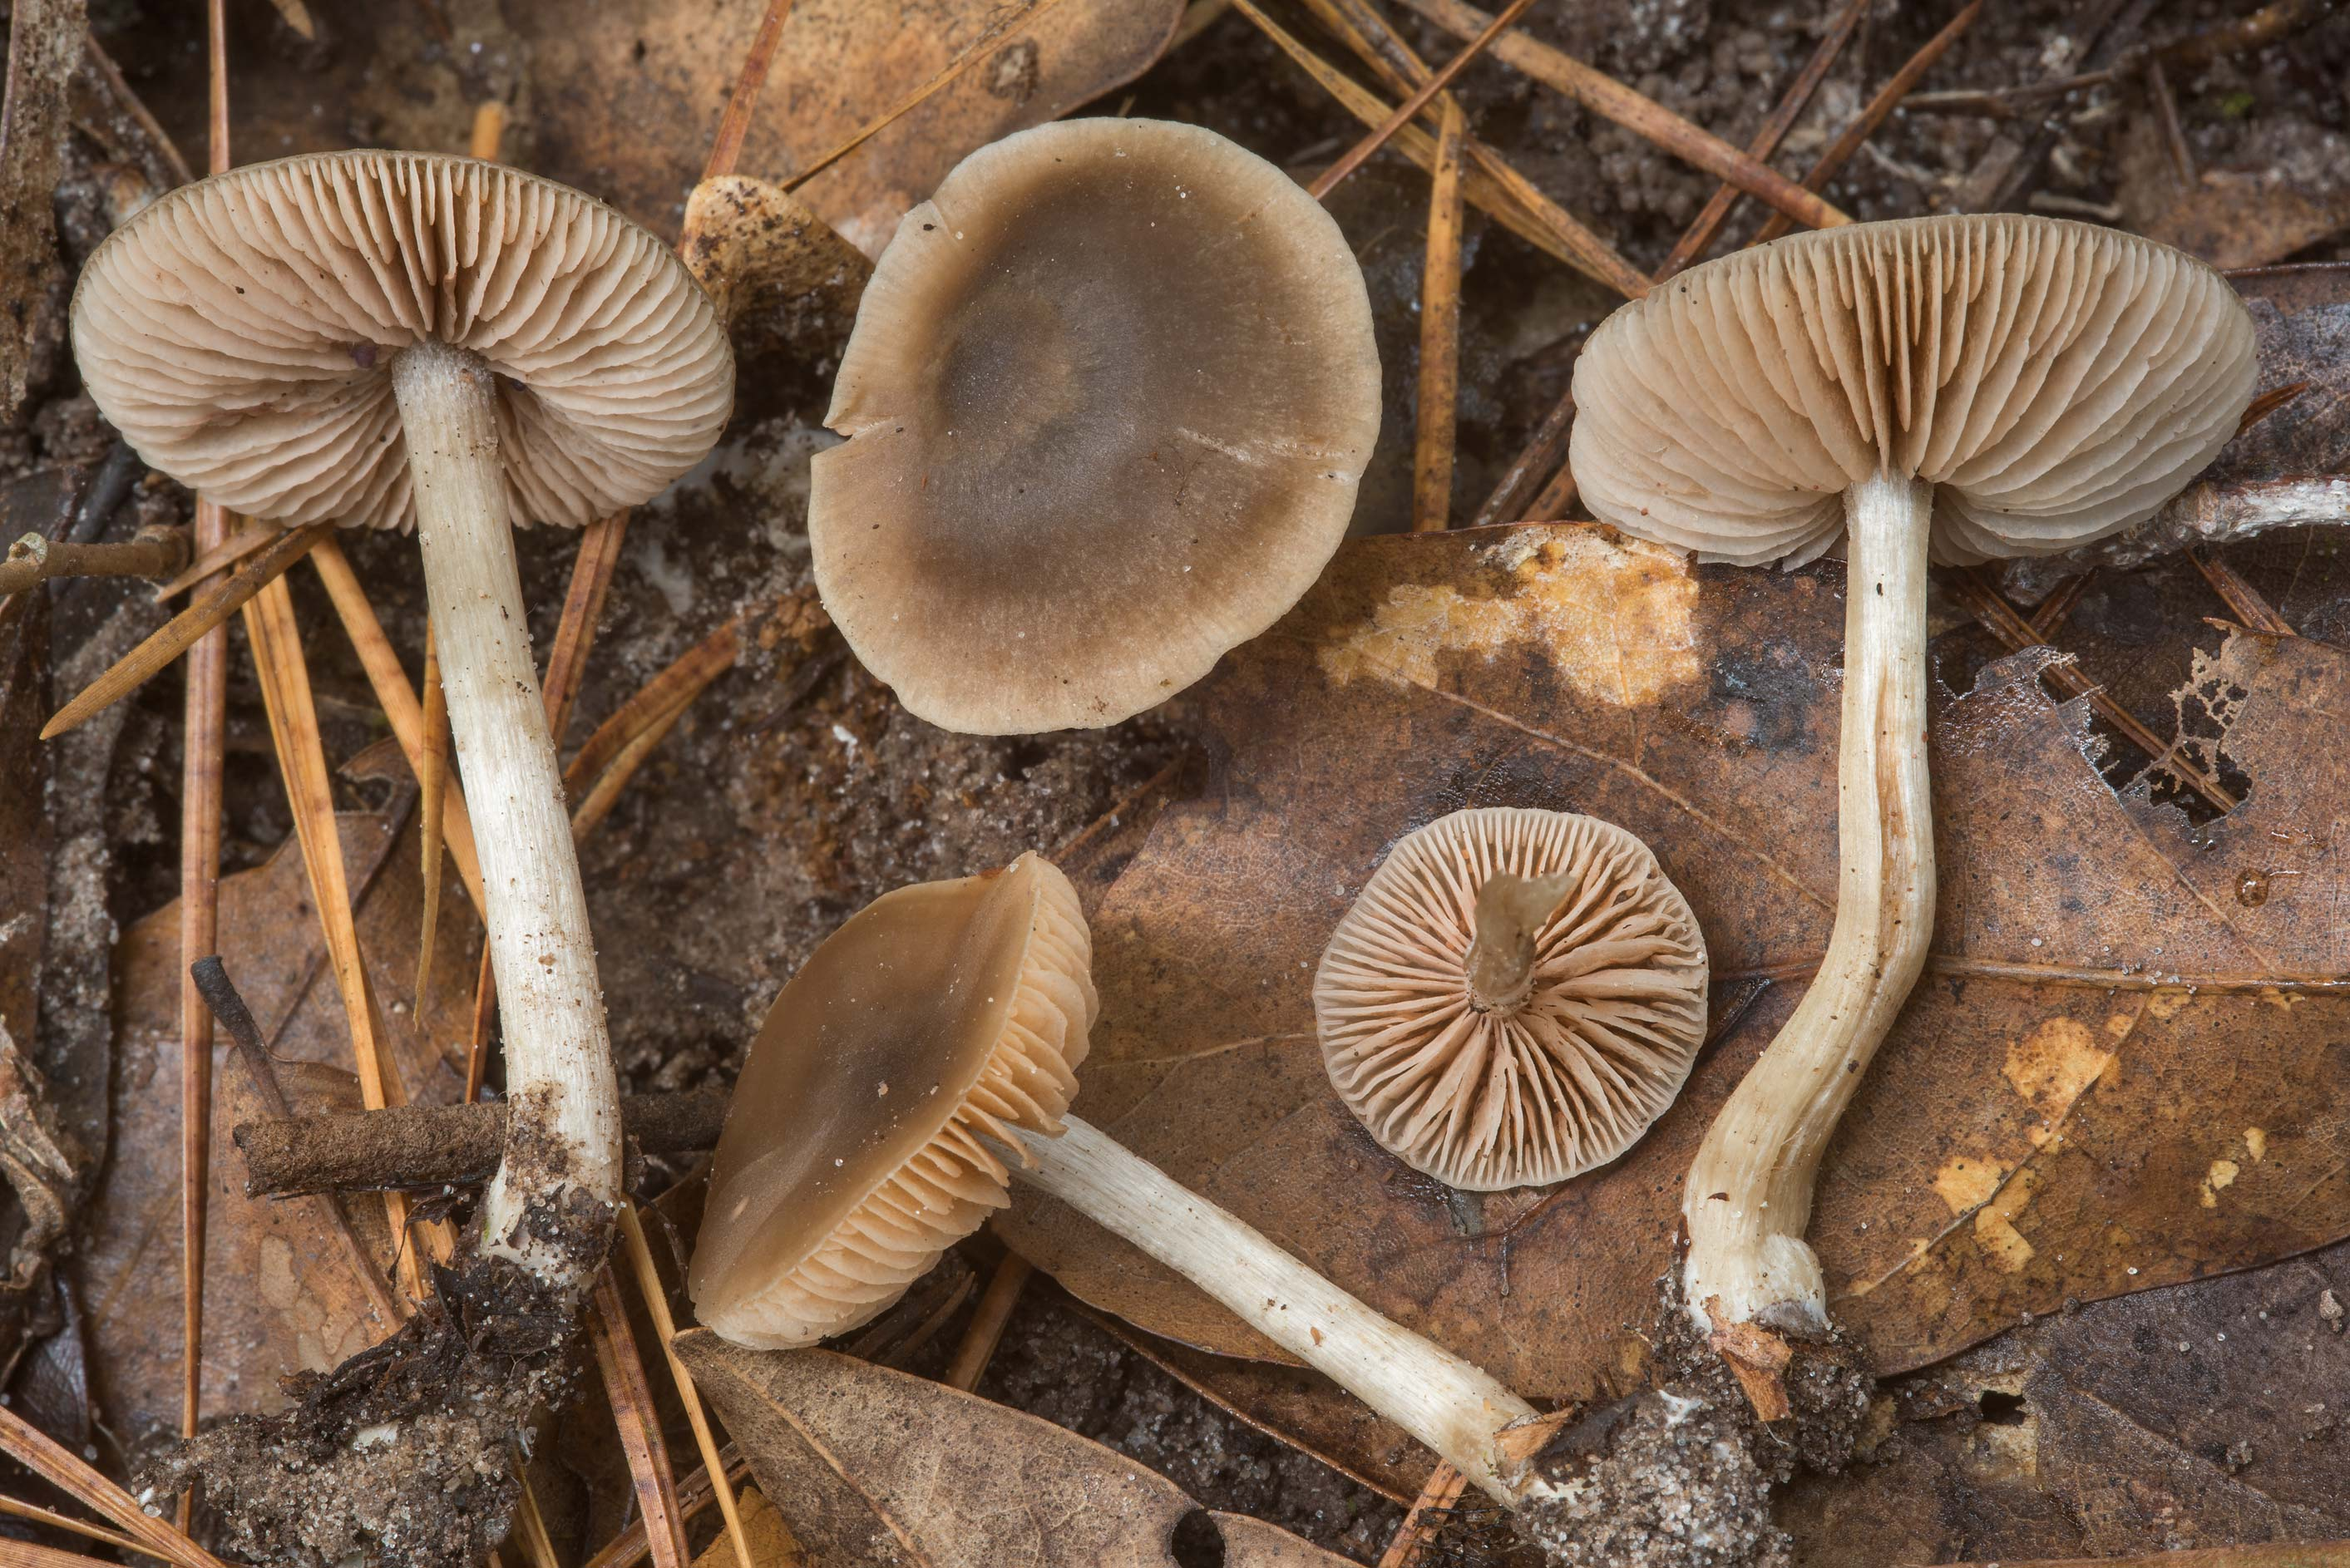 Group of pinkgill (Entoloma) mushrooms with black...National Forest. Shepherd, Texas